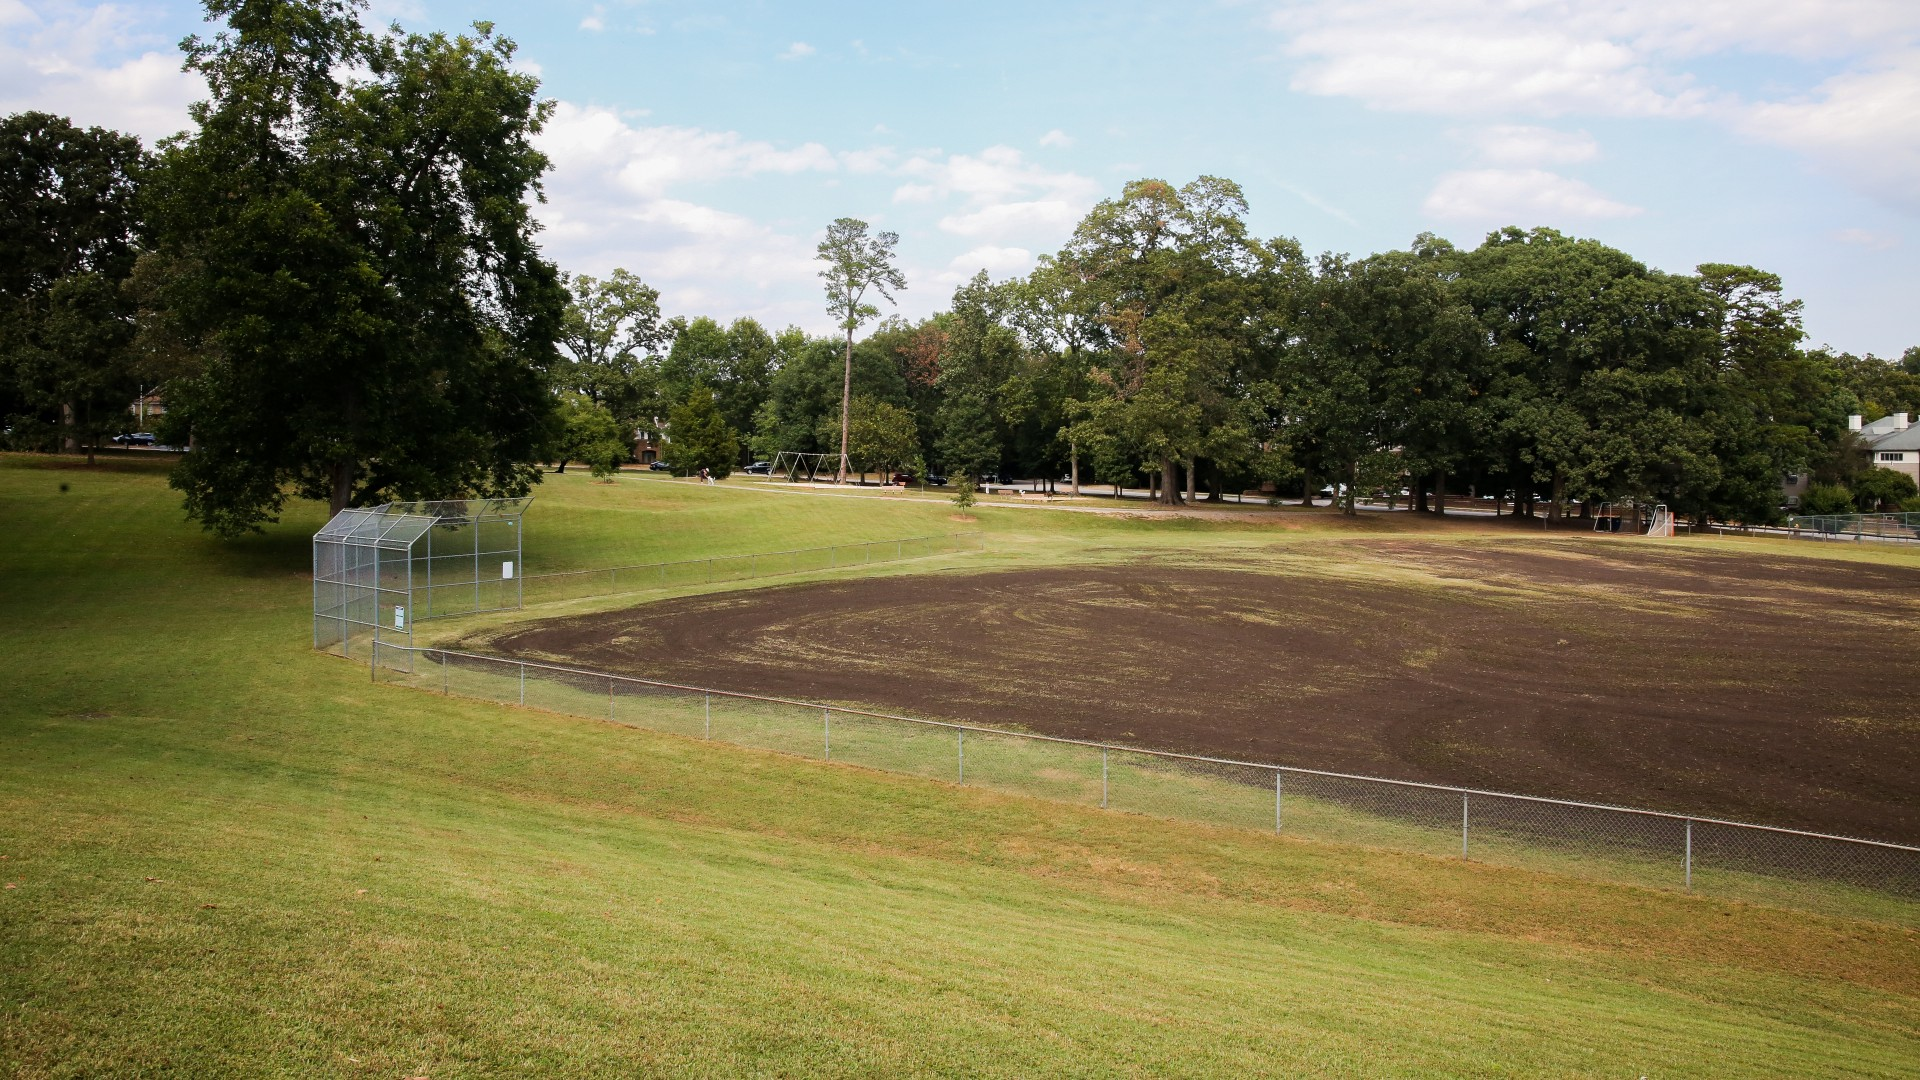 A large softball field at Fletcher Park